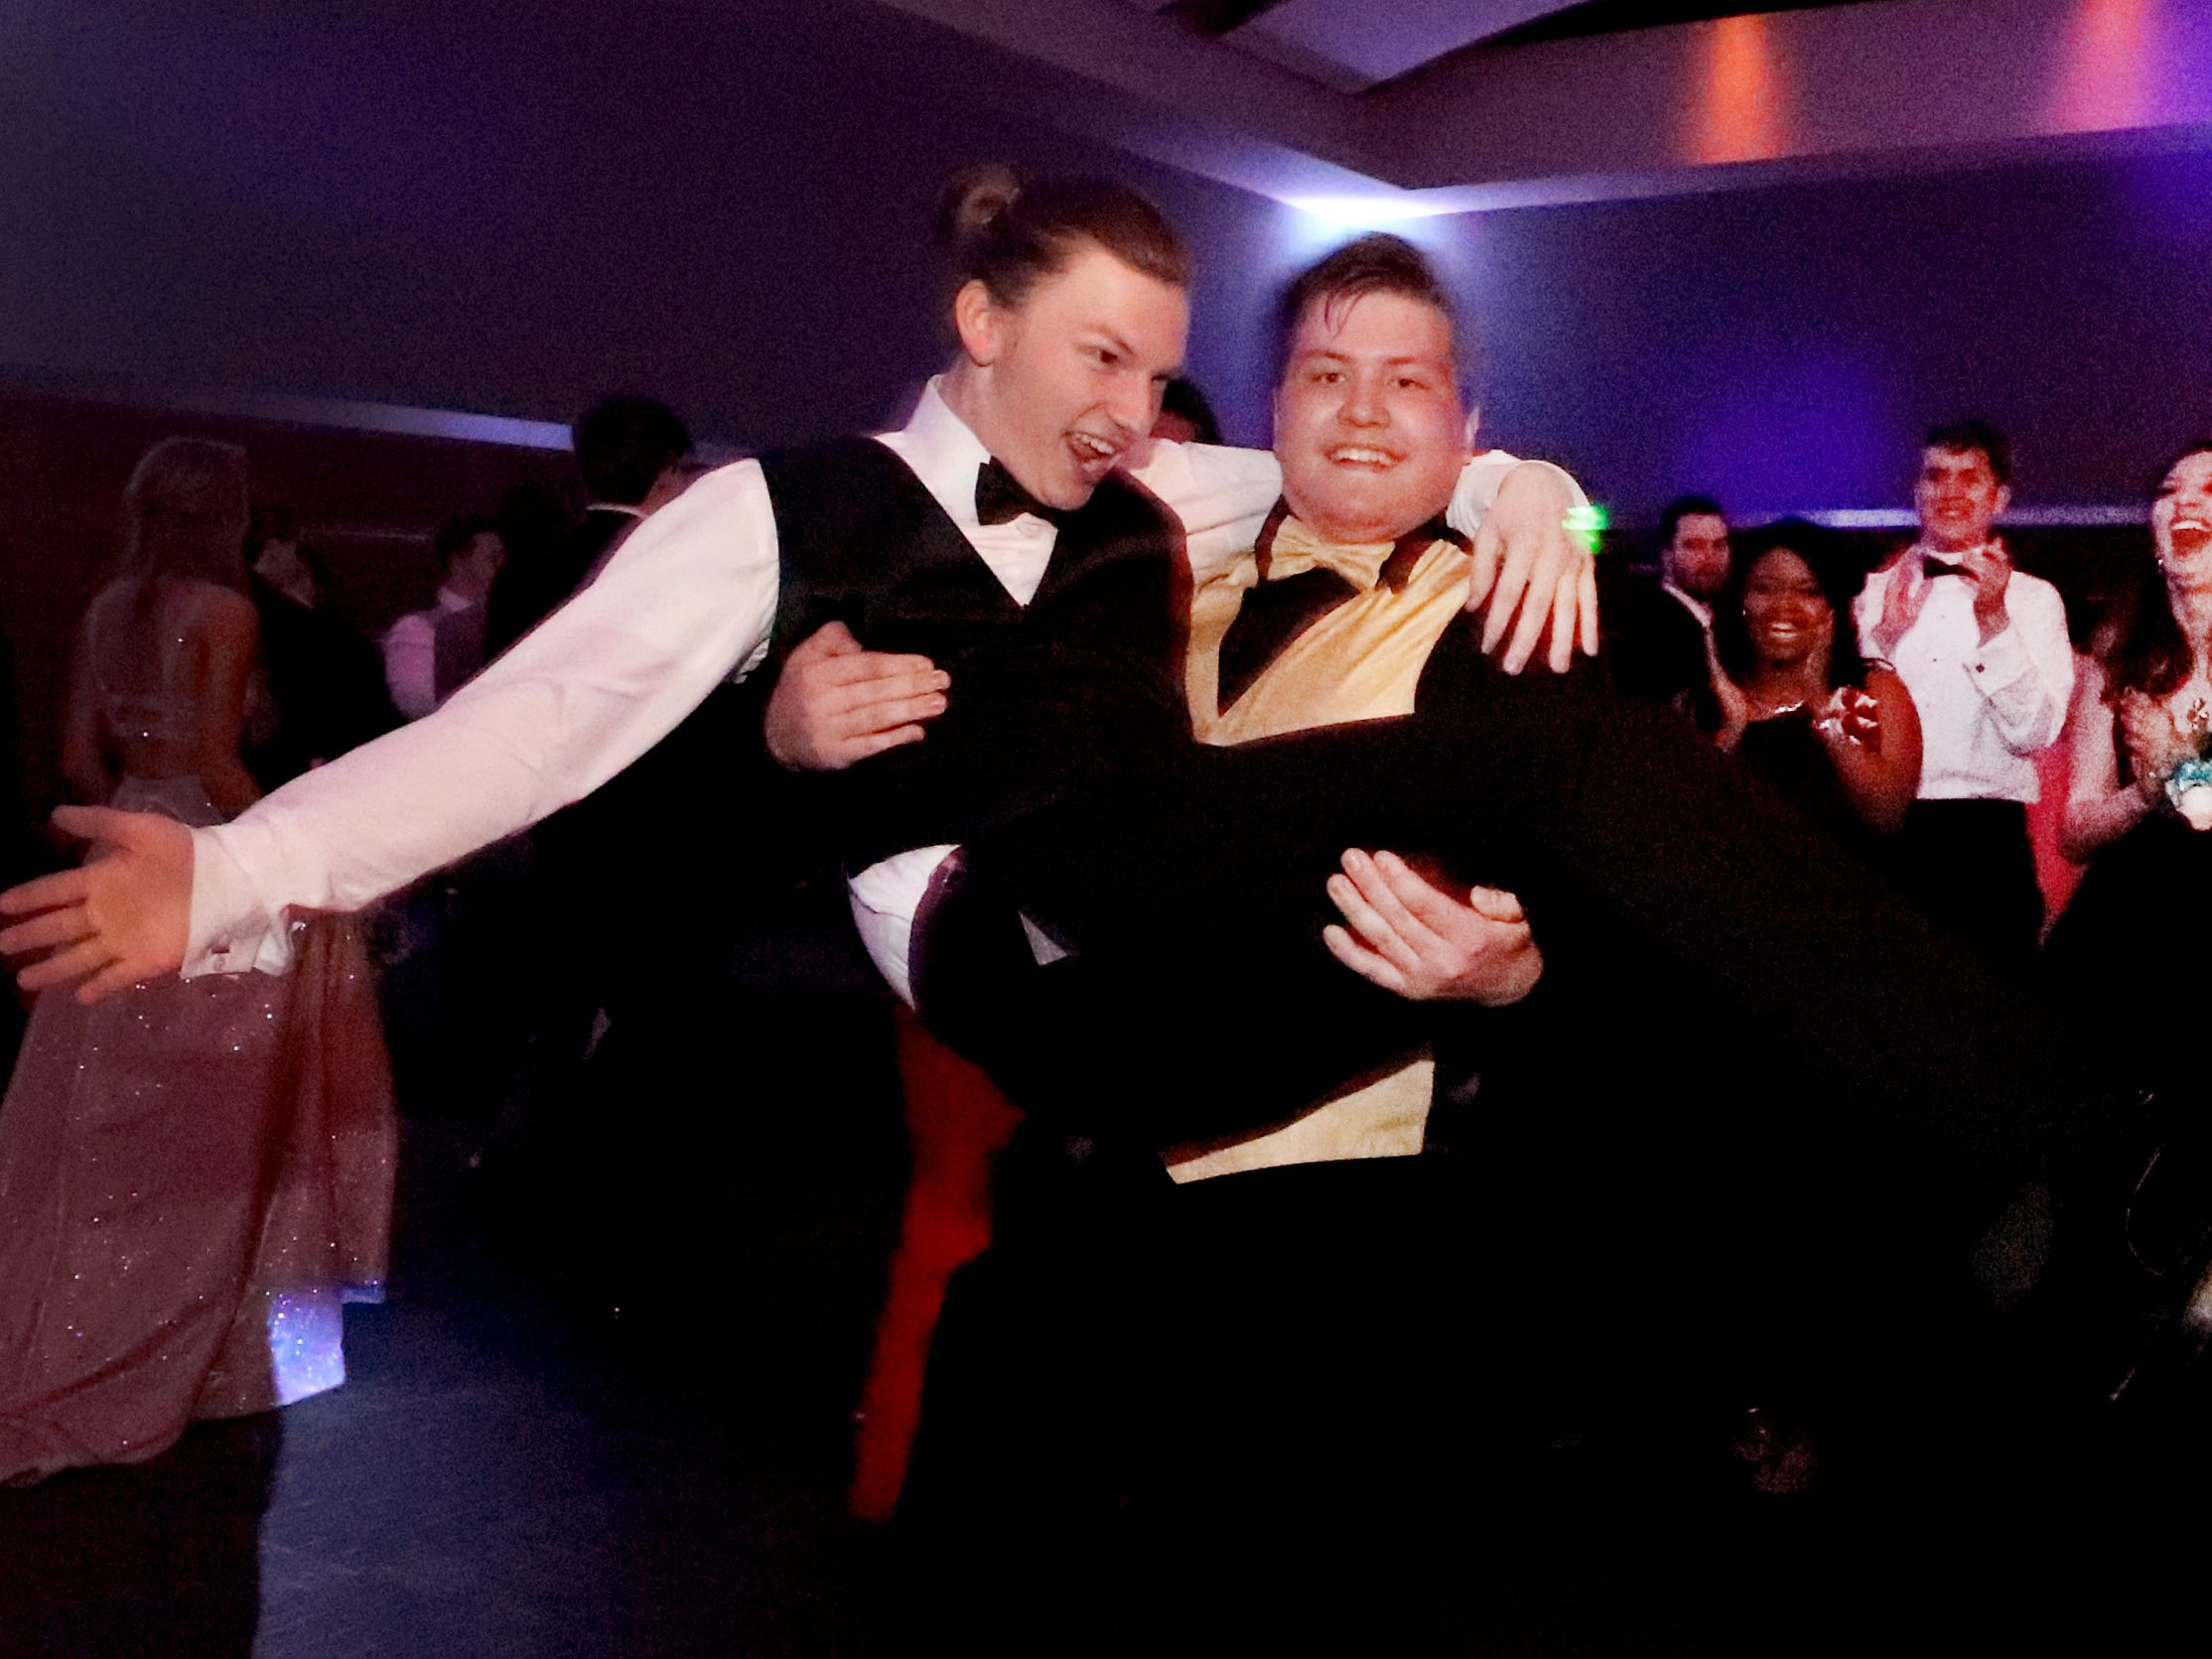 Joey Goldberger lifts Micah Curtis up and spins around with him on the dance floor as others watch at Blackman's prom on Friday April 12, 2019, at MTSU.